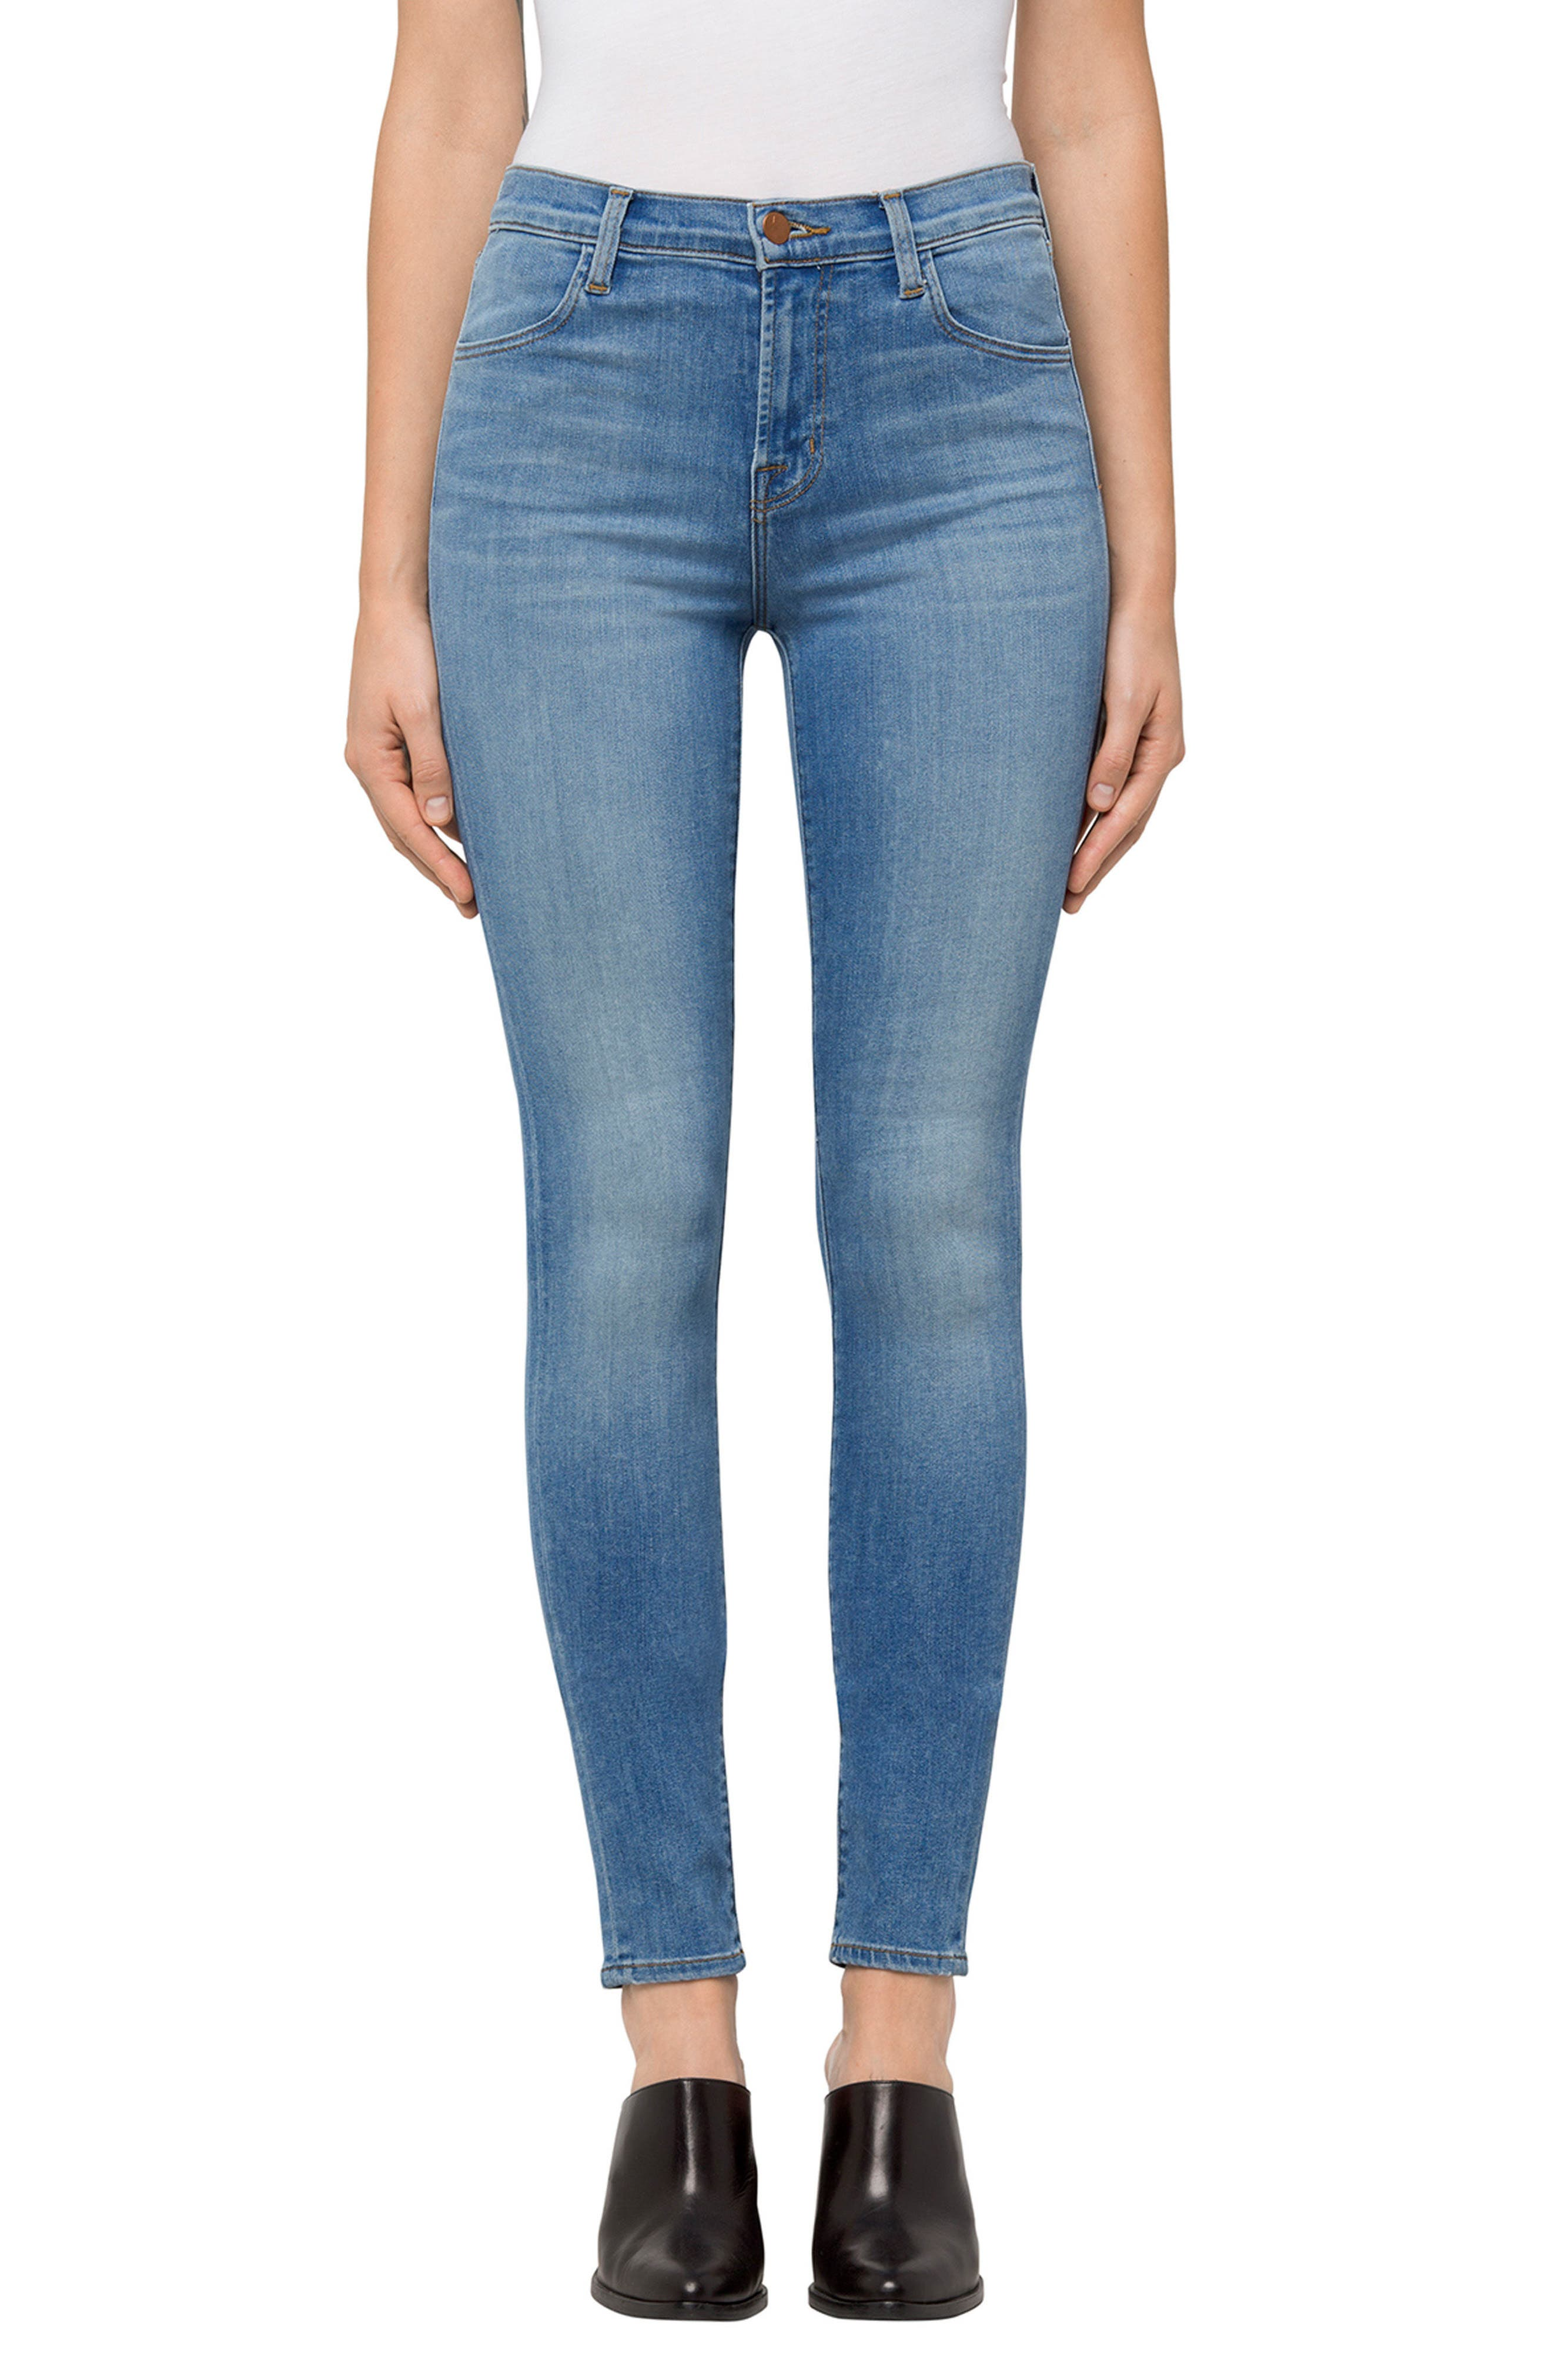 Alternate Image 1 Selected - J Brand Maria High Waist Skinny Jeans (Fleeting)